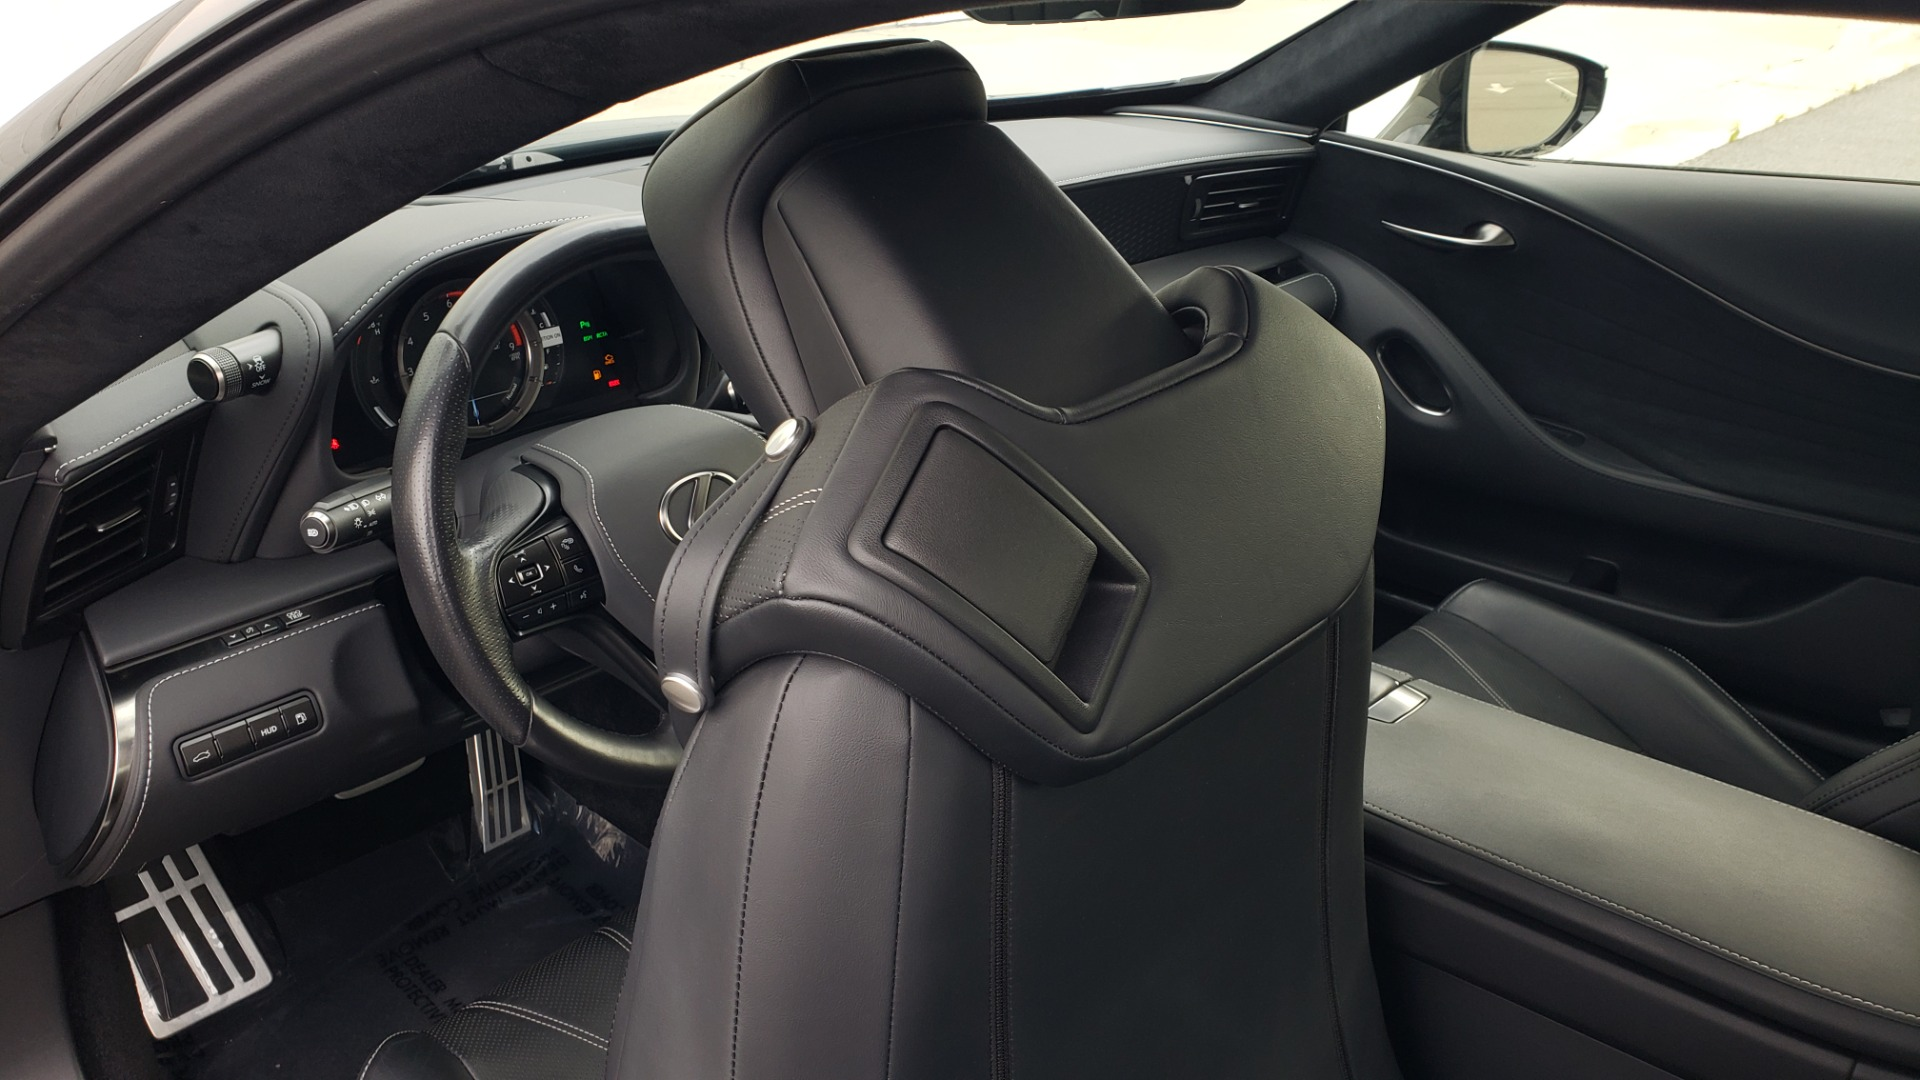 Used 2018 Lexus LC 500 COUPE / 5.0L V8 (471HP) / 10-SPD AUTO / HUD / SUNROOF / REARVIEW for sale Sold at Formula Imports in Charlotte NC 28227 45